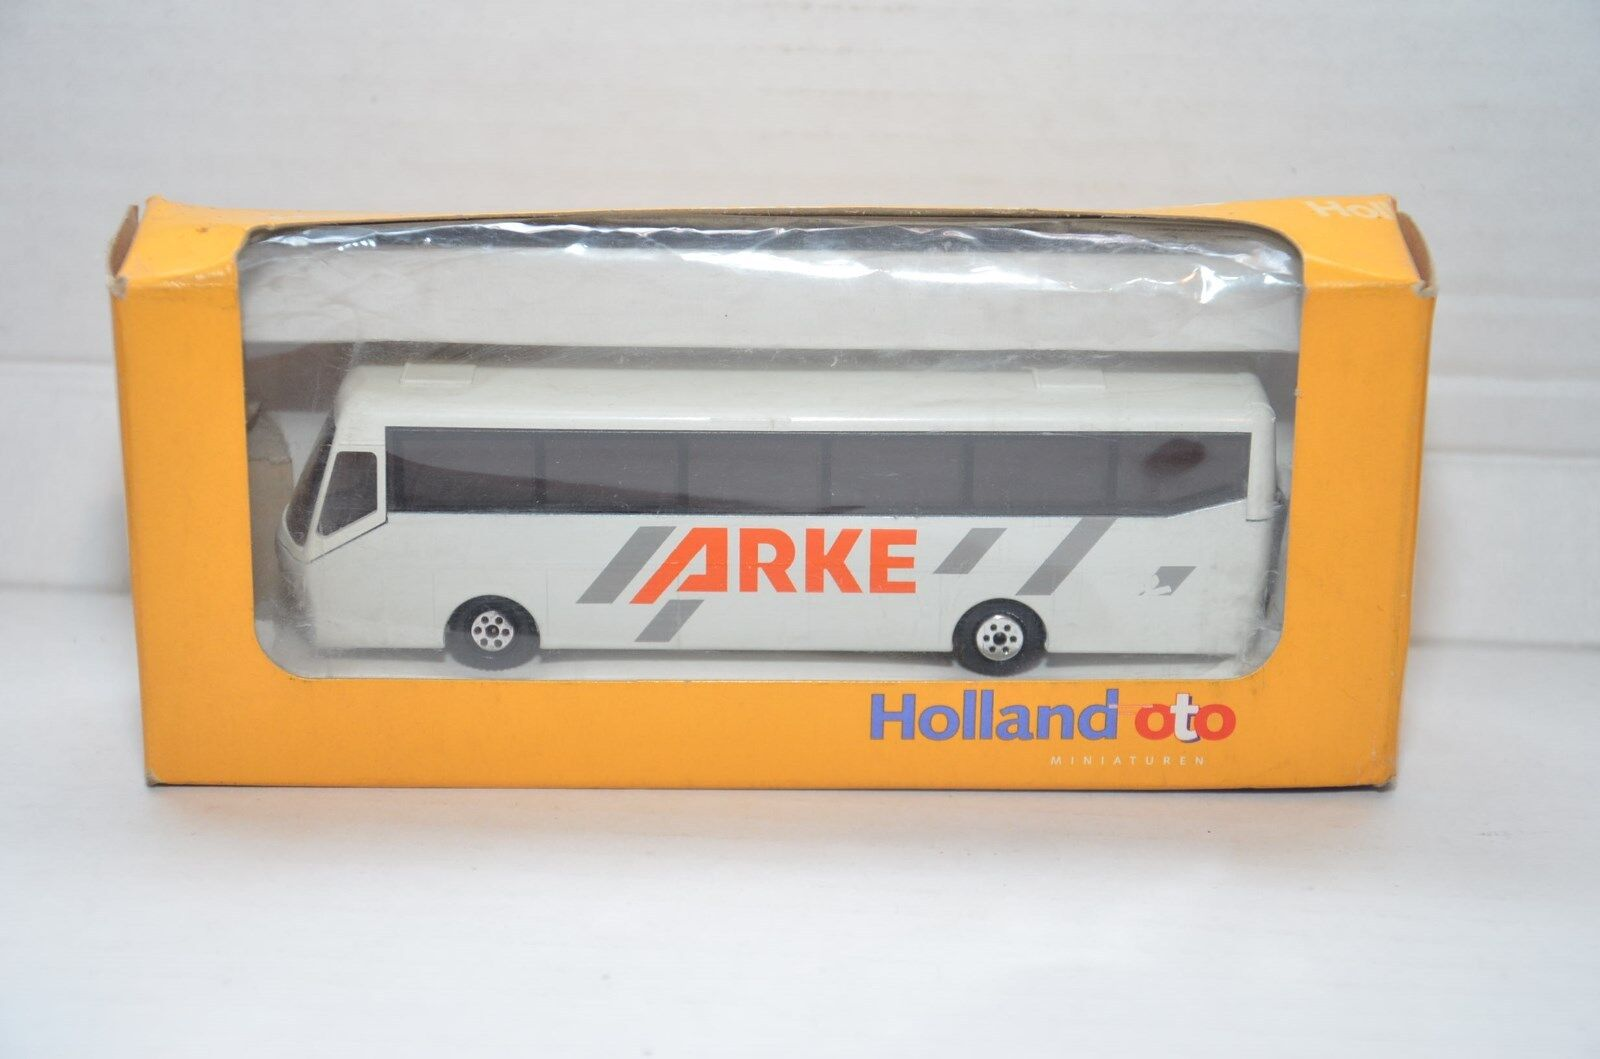 RARE     Bova Futura Holland oto 1 87 Made in Holland